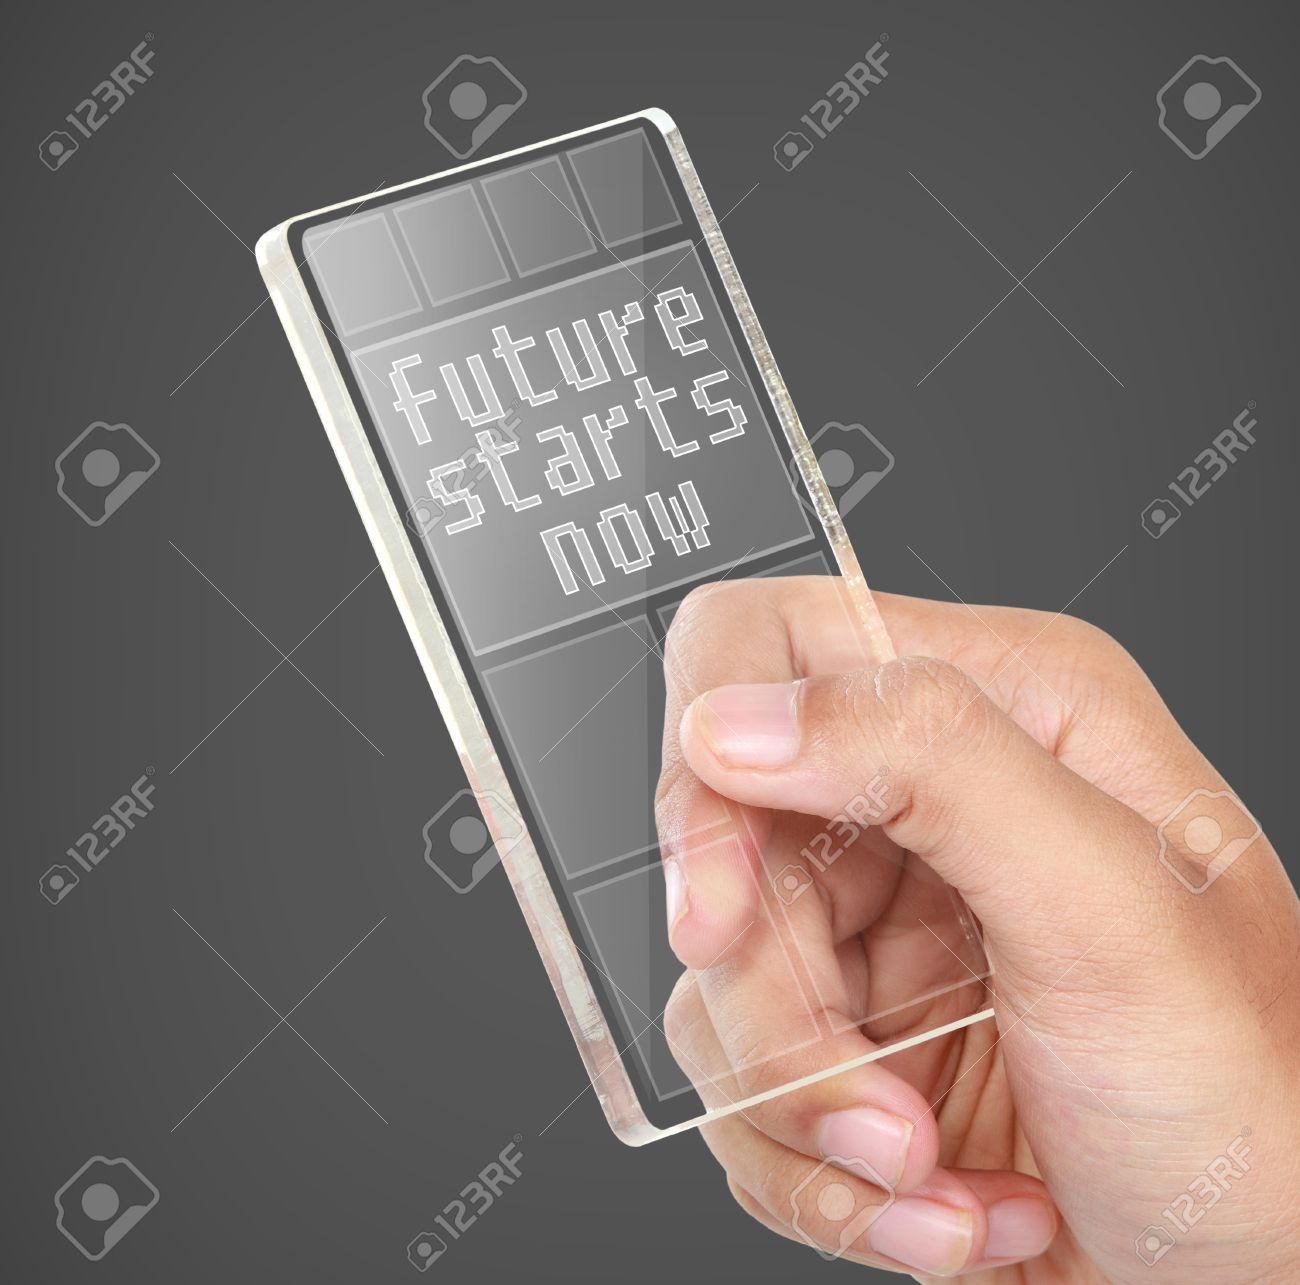 future technology in mobile phones. image of hands holding futuristic transparent mobile phone. future technology concept stock photo - 27387541 in phones